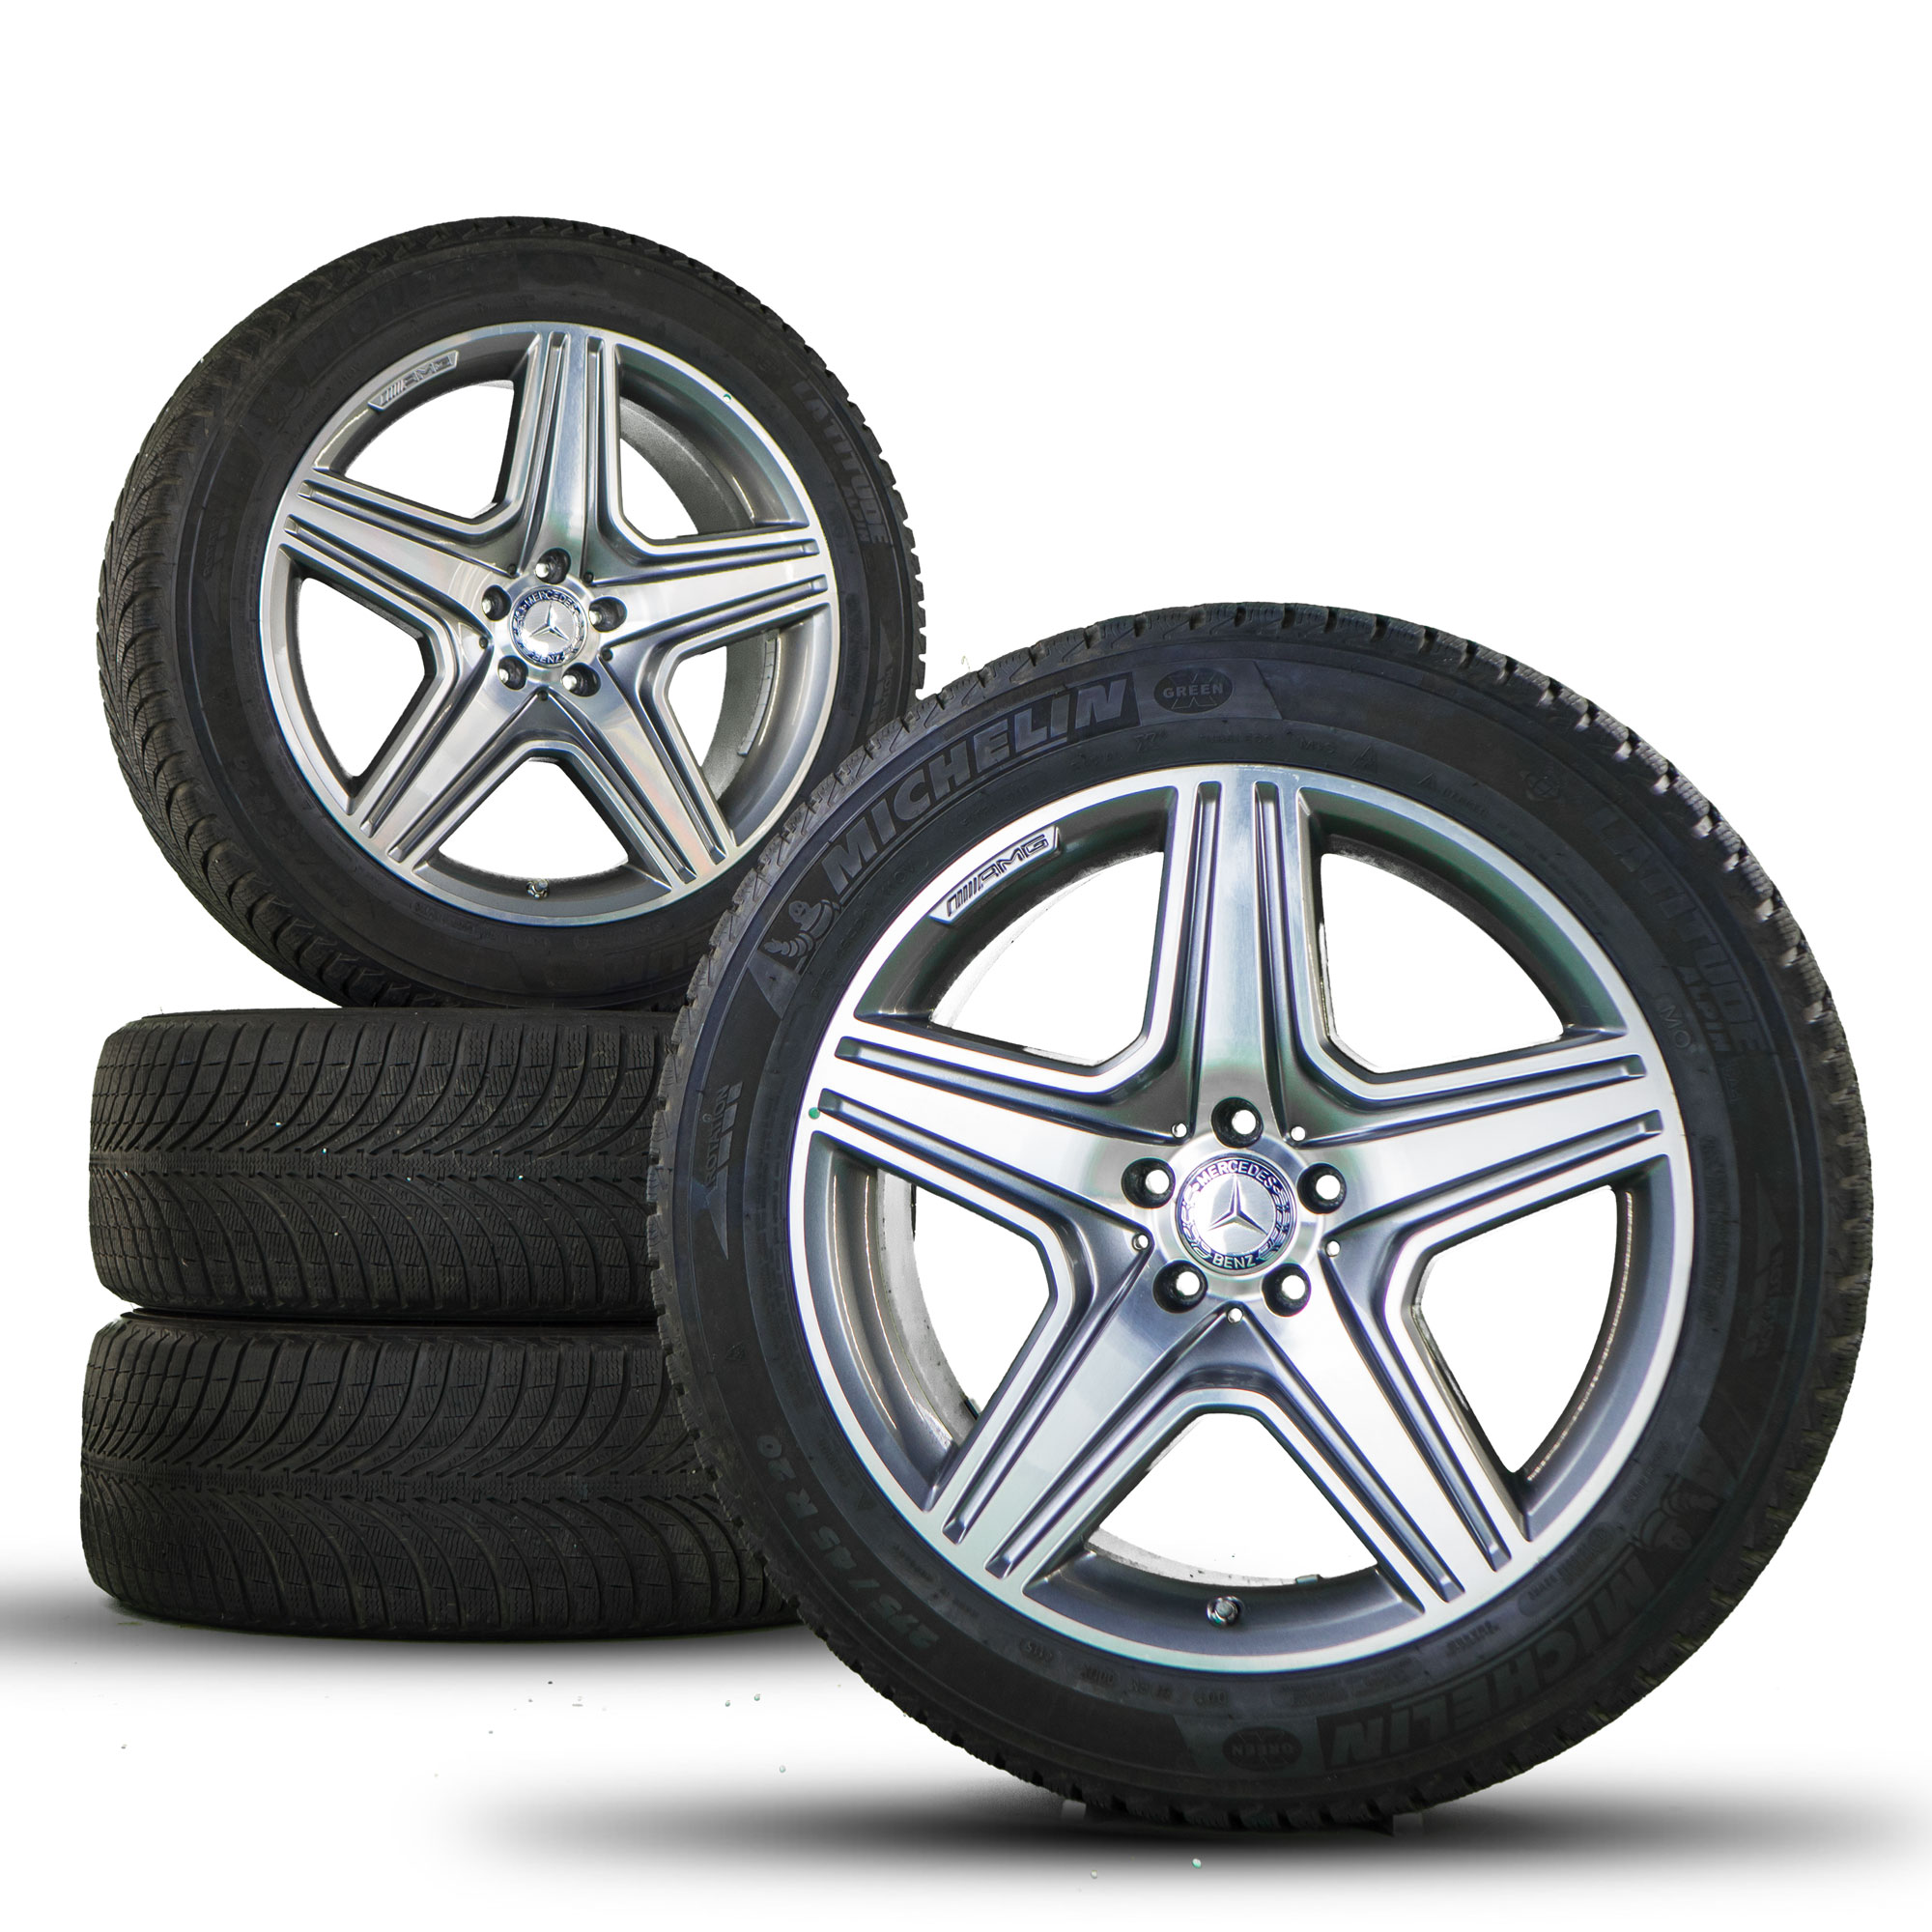 Mercedes benz 20 inch rims gl 63 amg x166 alloy wheels for Mercedes benz tyres